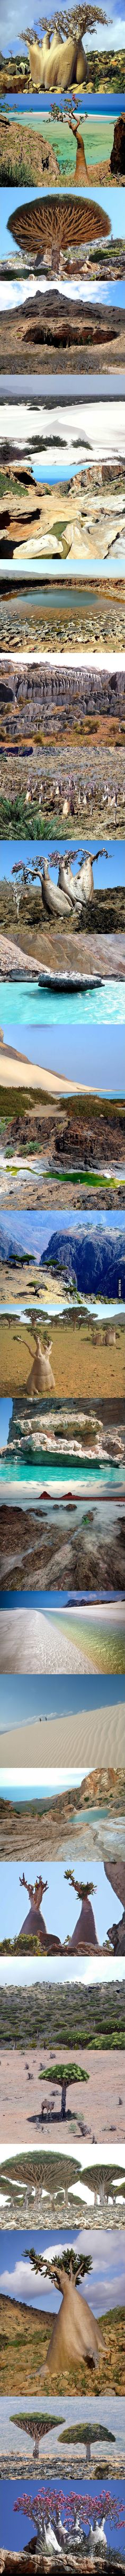 Socotra Island, Yemen. One of the most alien looking places on earth.